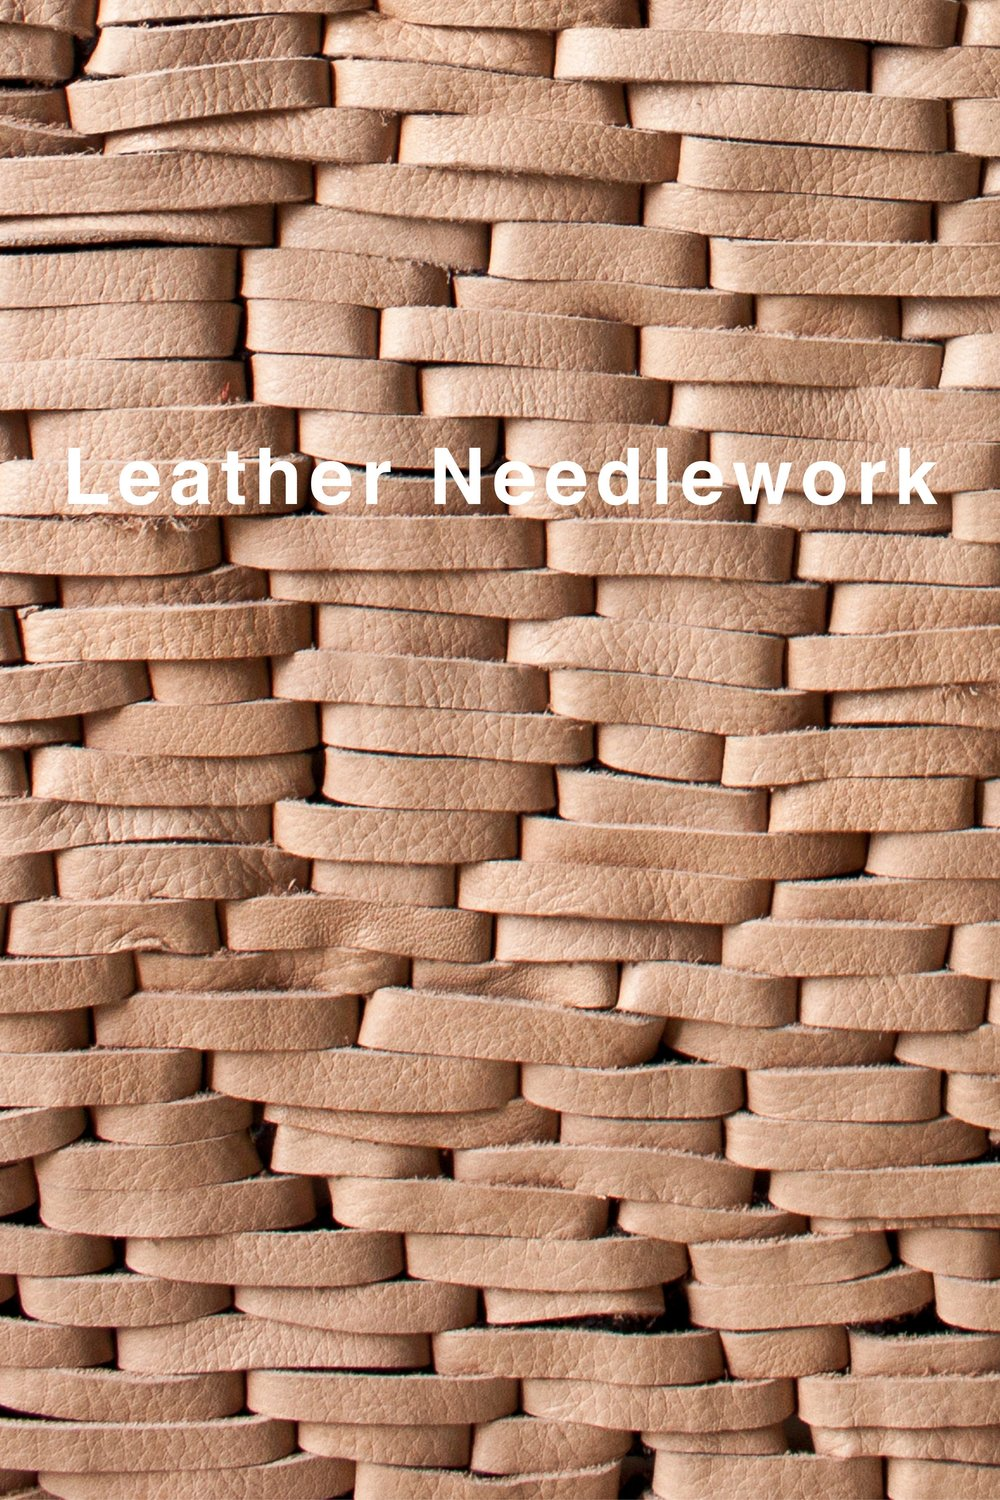 BookLeather Needlework - Ideas and research of the project Leather Needlework